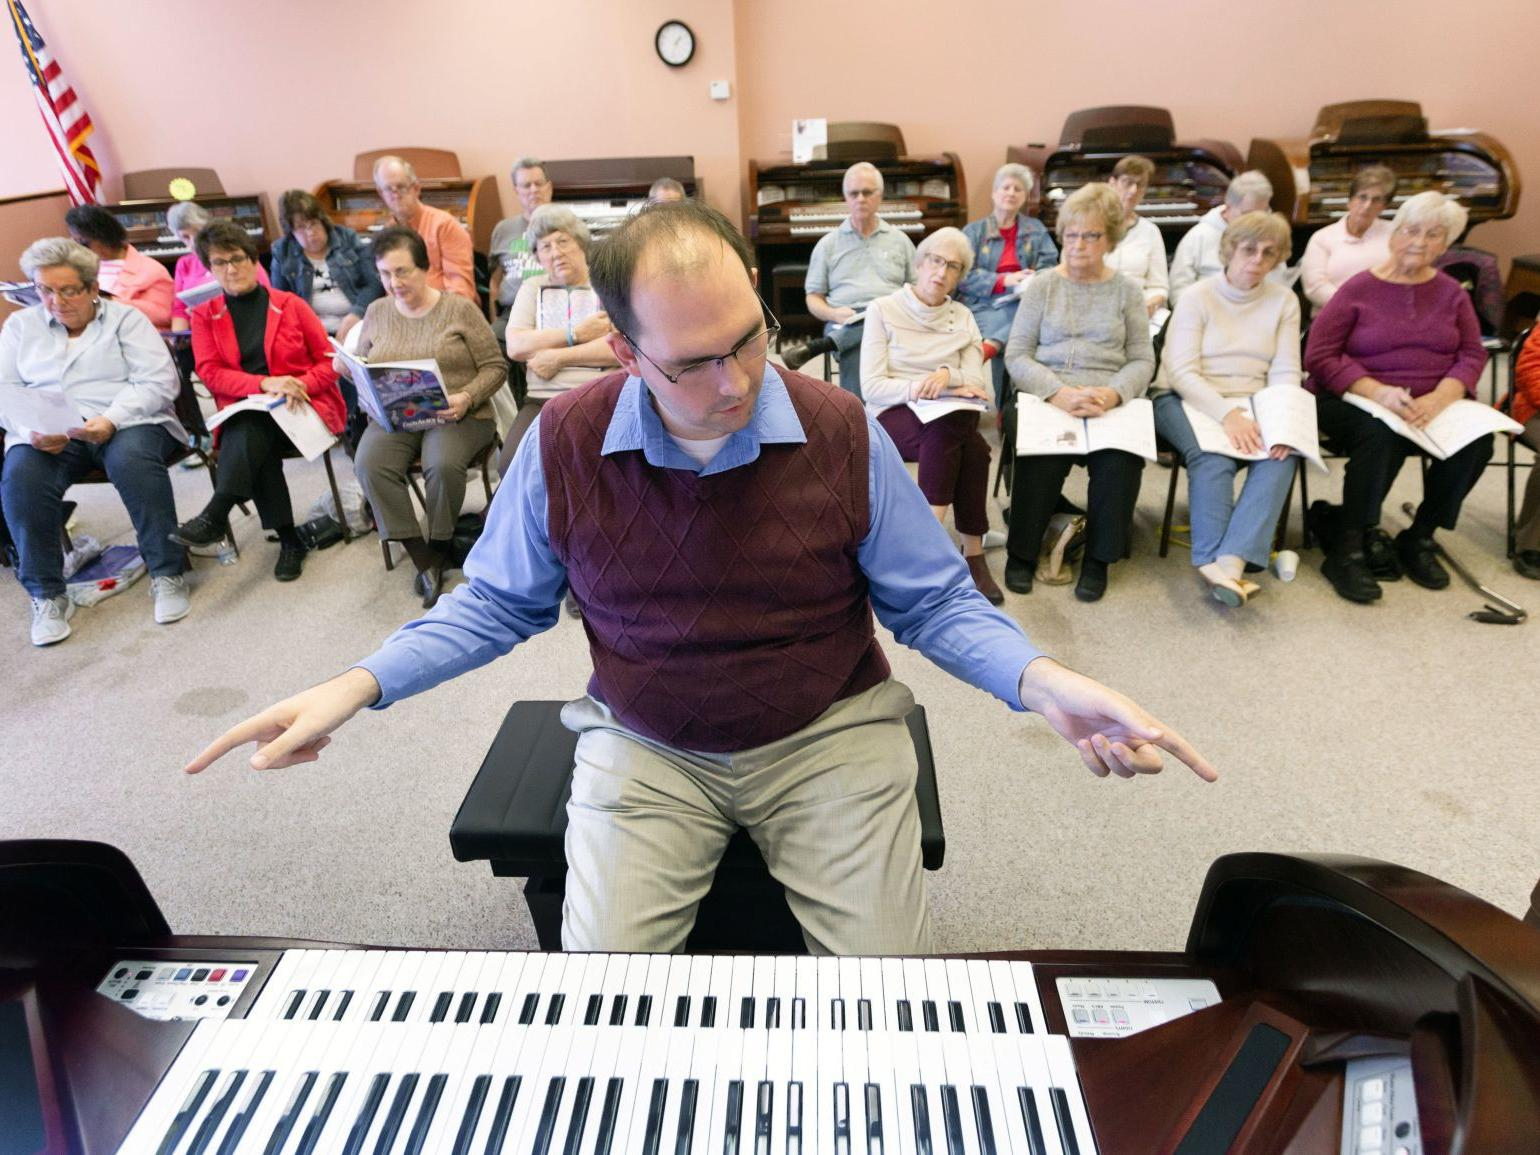 Unique music classes a way for Omahans to share songs, celebrations and sorrows